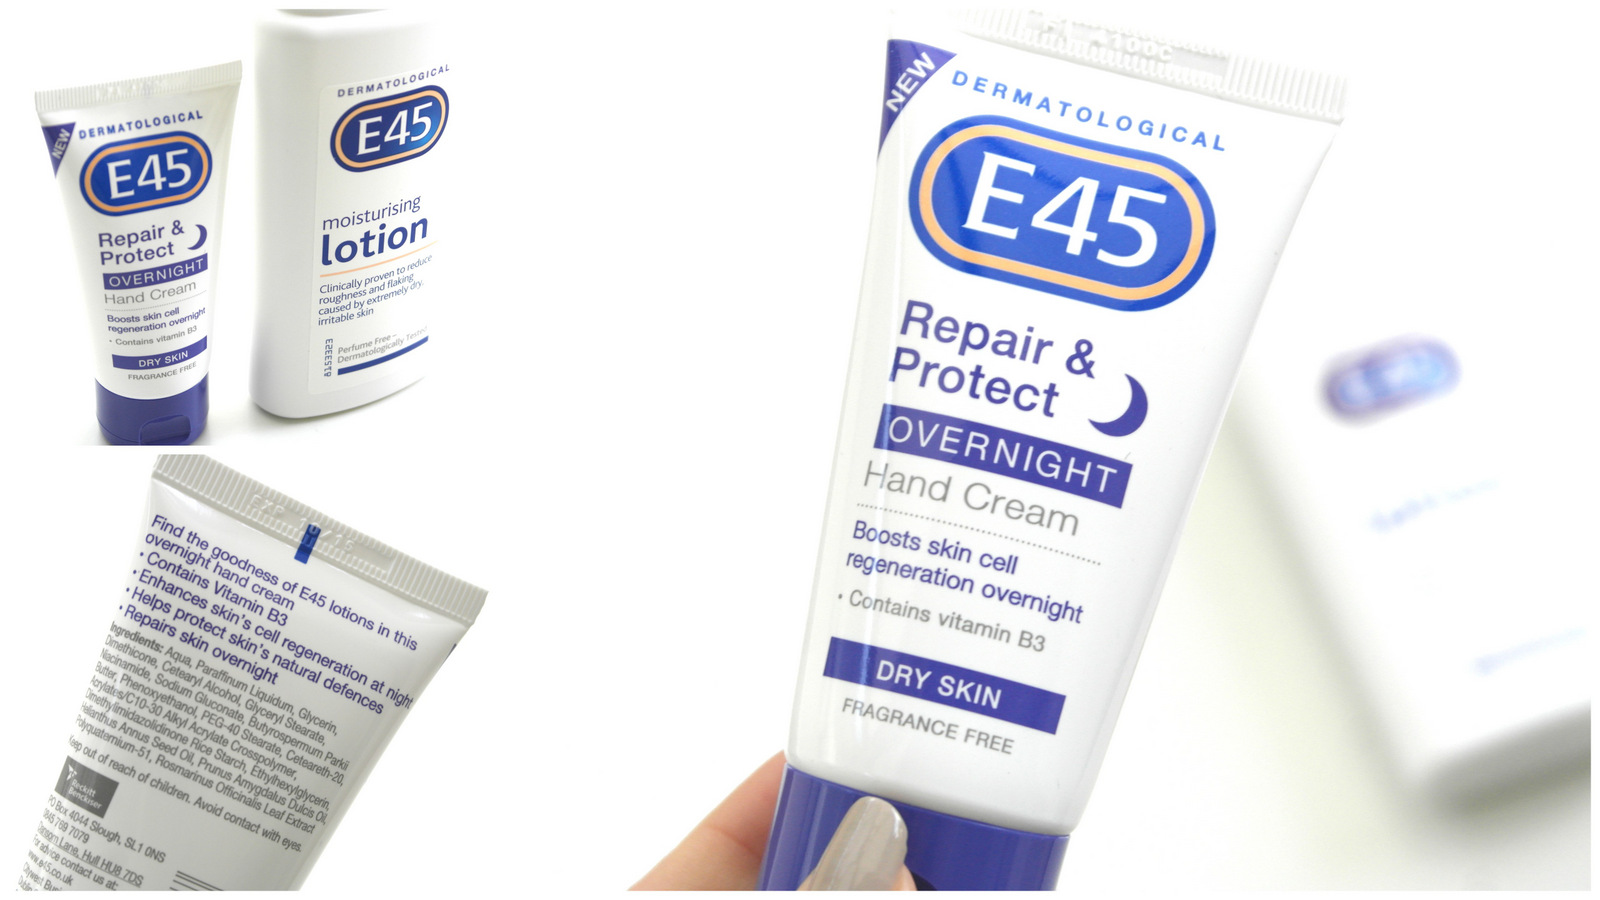 E45 Overnight Hand Cream + Lotion